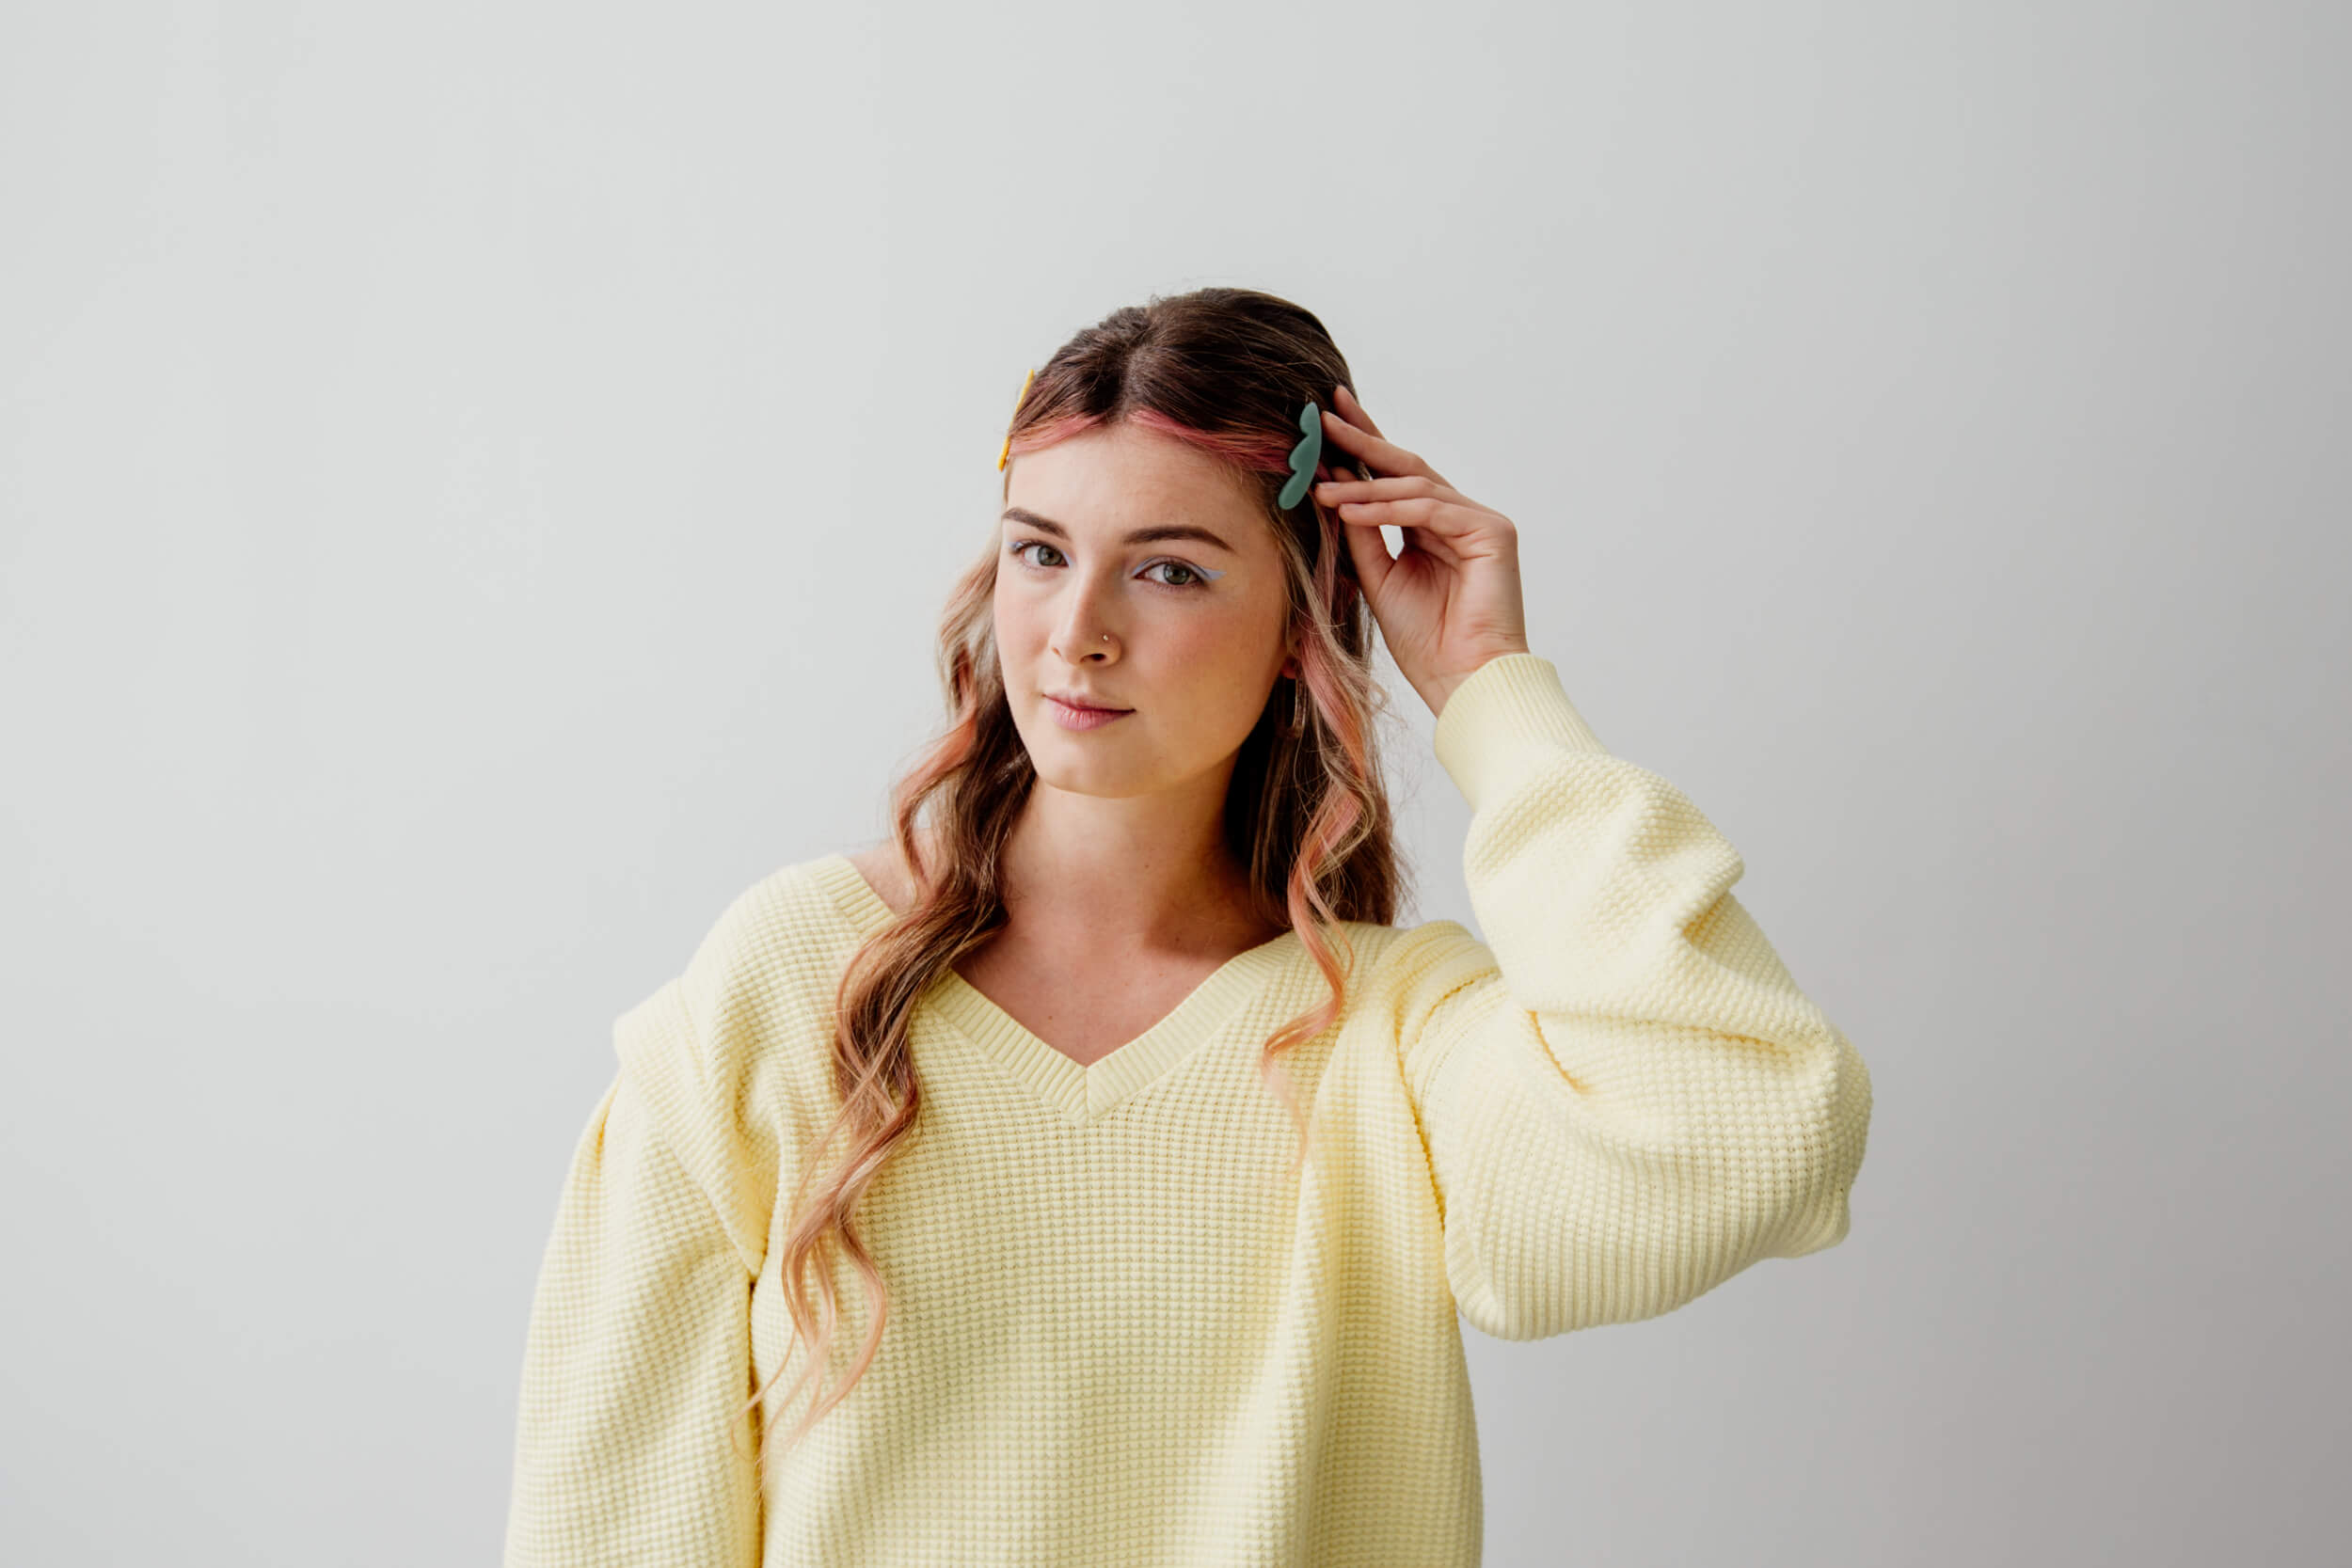 A woman in a yellow sweater pushed her hair back